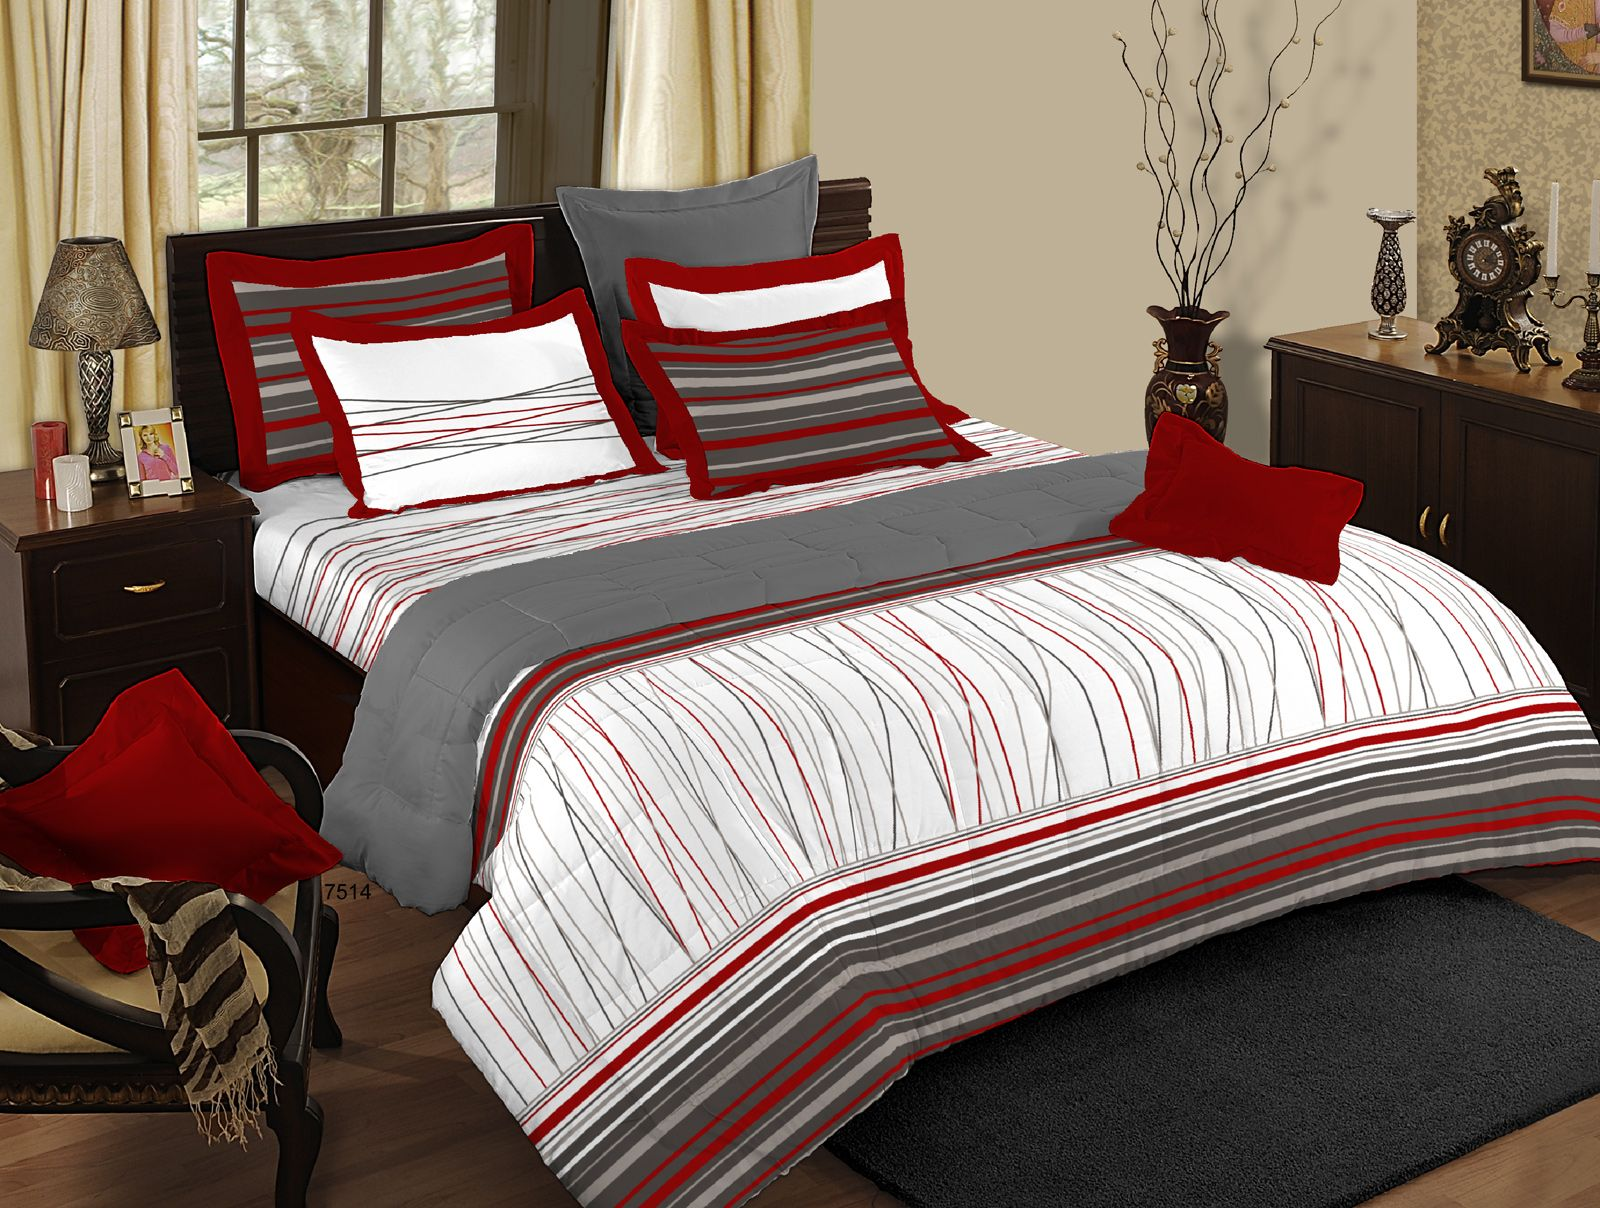 Choosing the best bed sheets